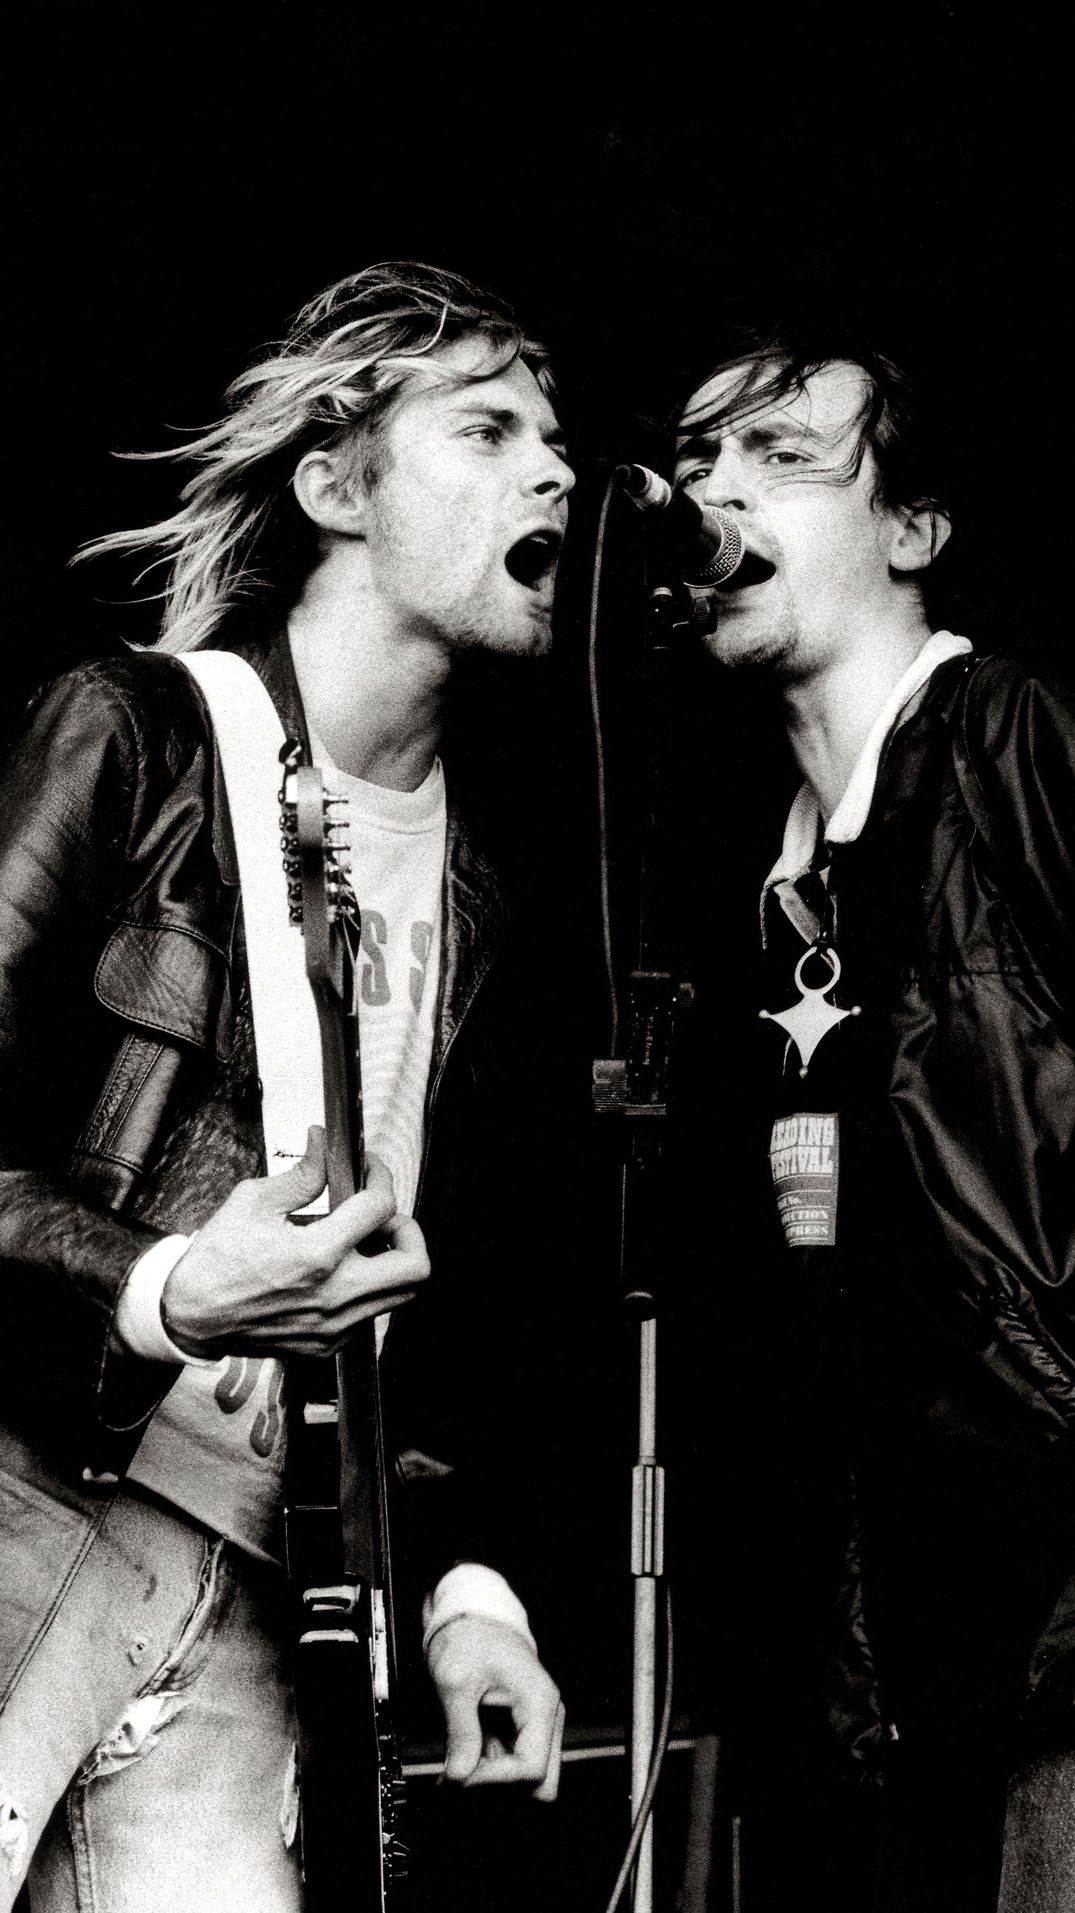 Kurt Cobain And Eugene Kelly On Stage At The Reading Festival 1991 Nirvana